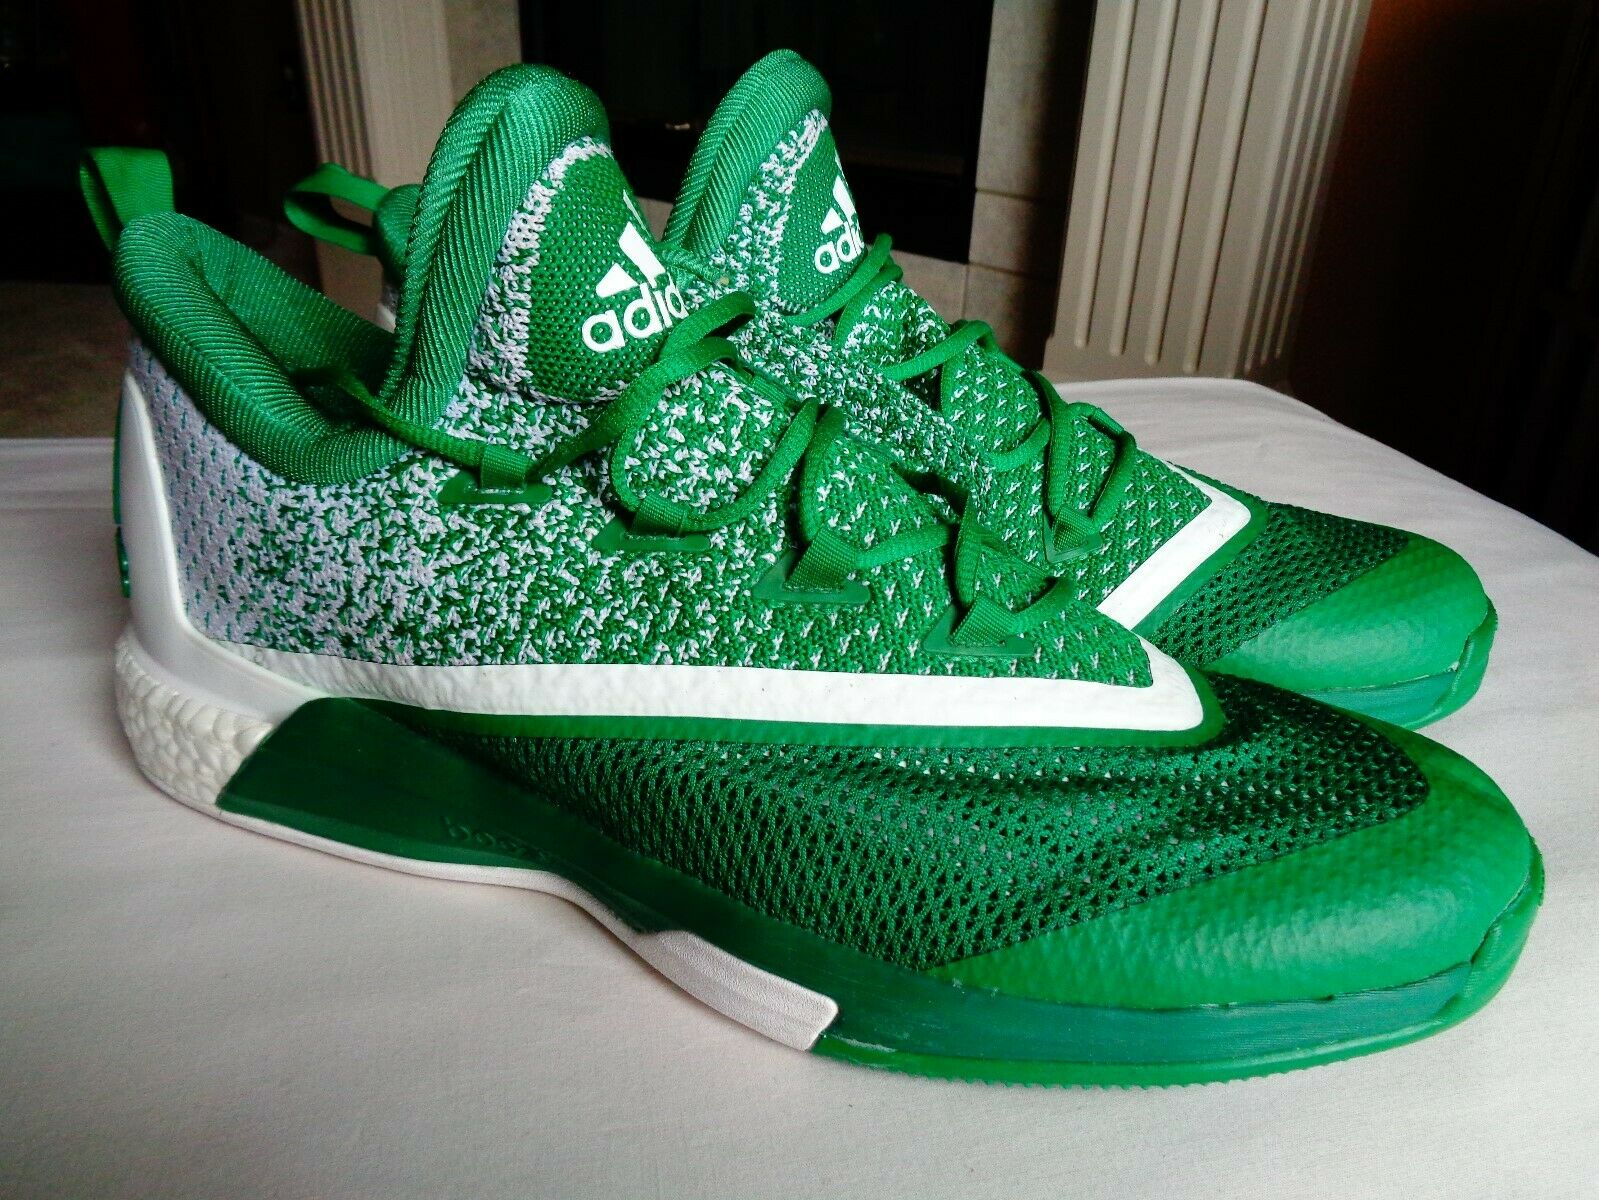 1aa23093f09a6 Adidas Boost AQ8093 Men s Green and shoes Size 17 White Basketball ...